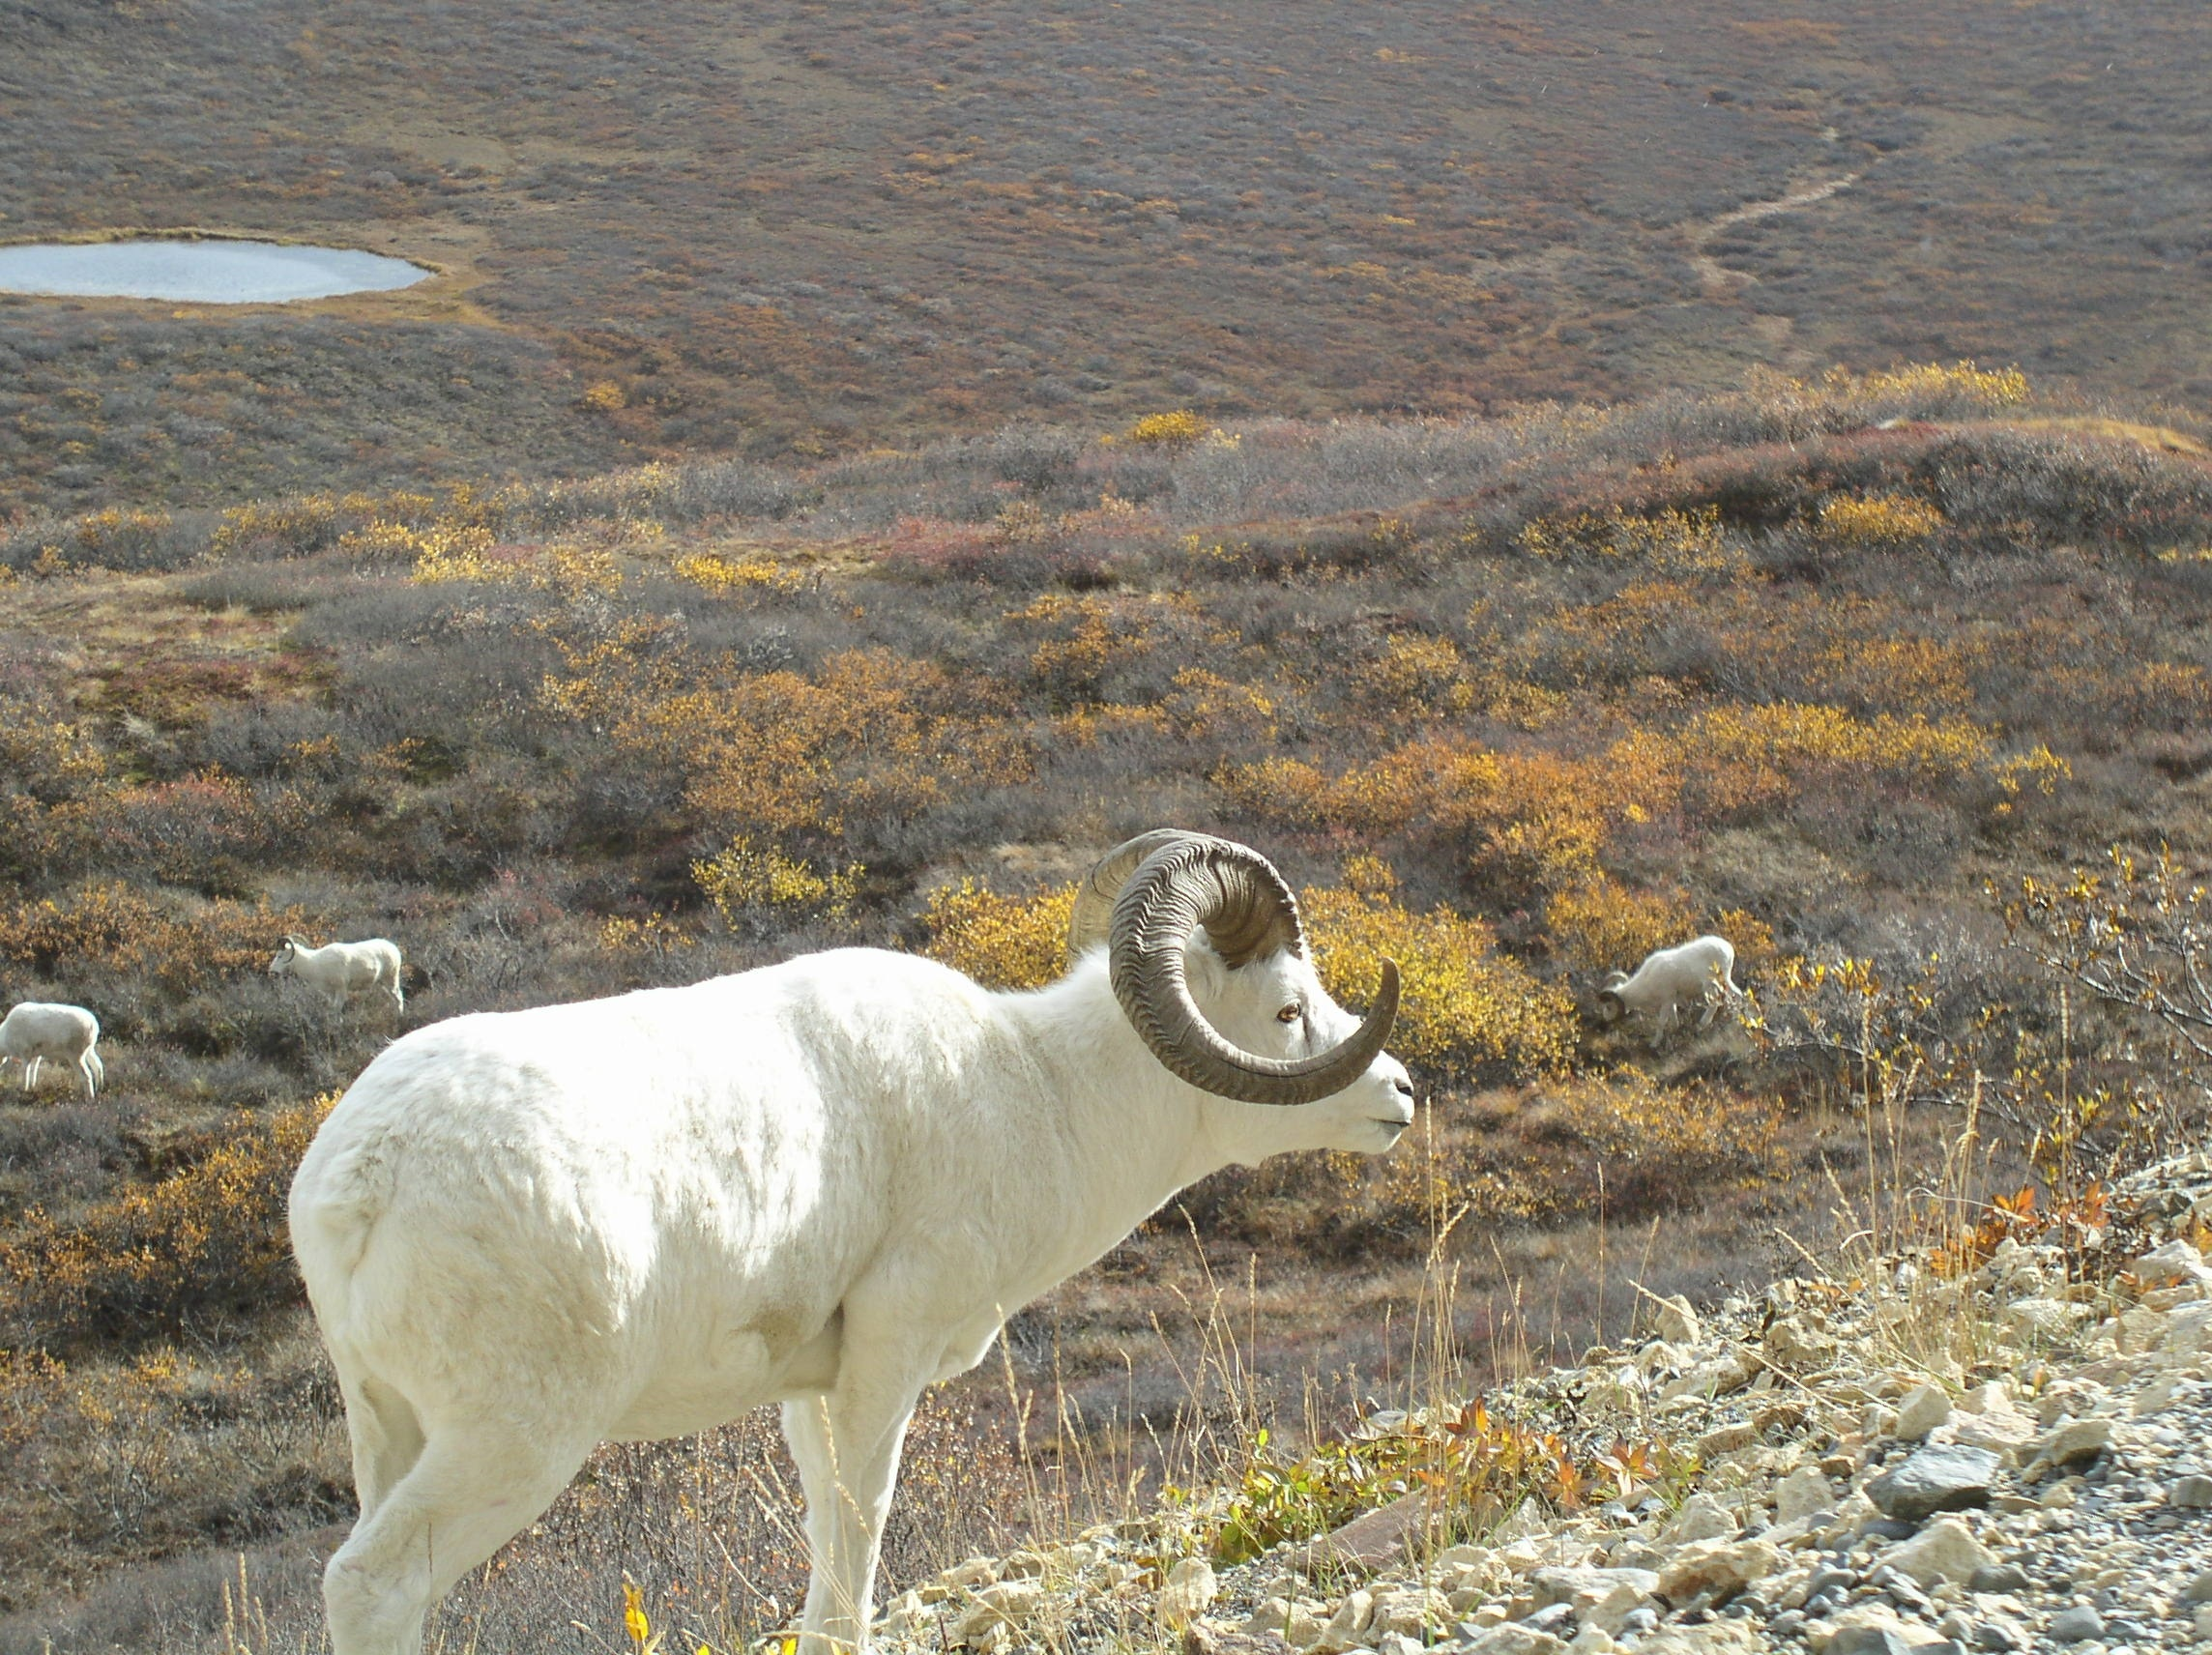 Dall Sheep, White, Wild, Sheep, Nature, HQ Photo